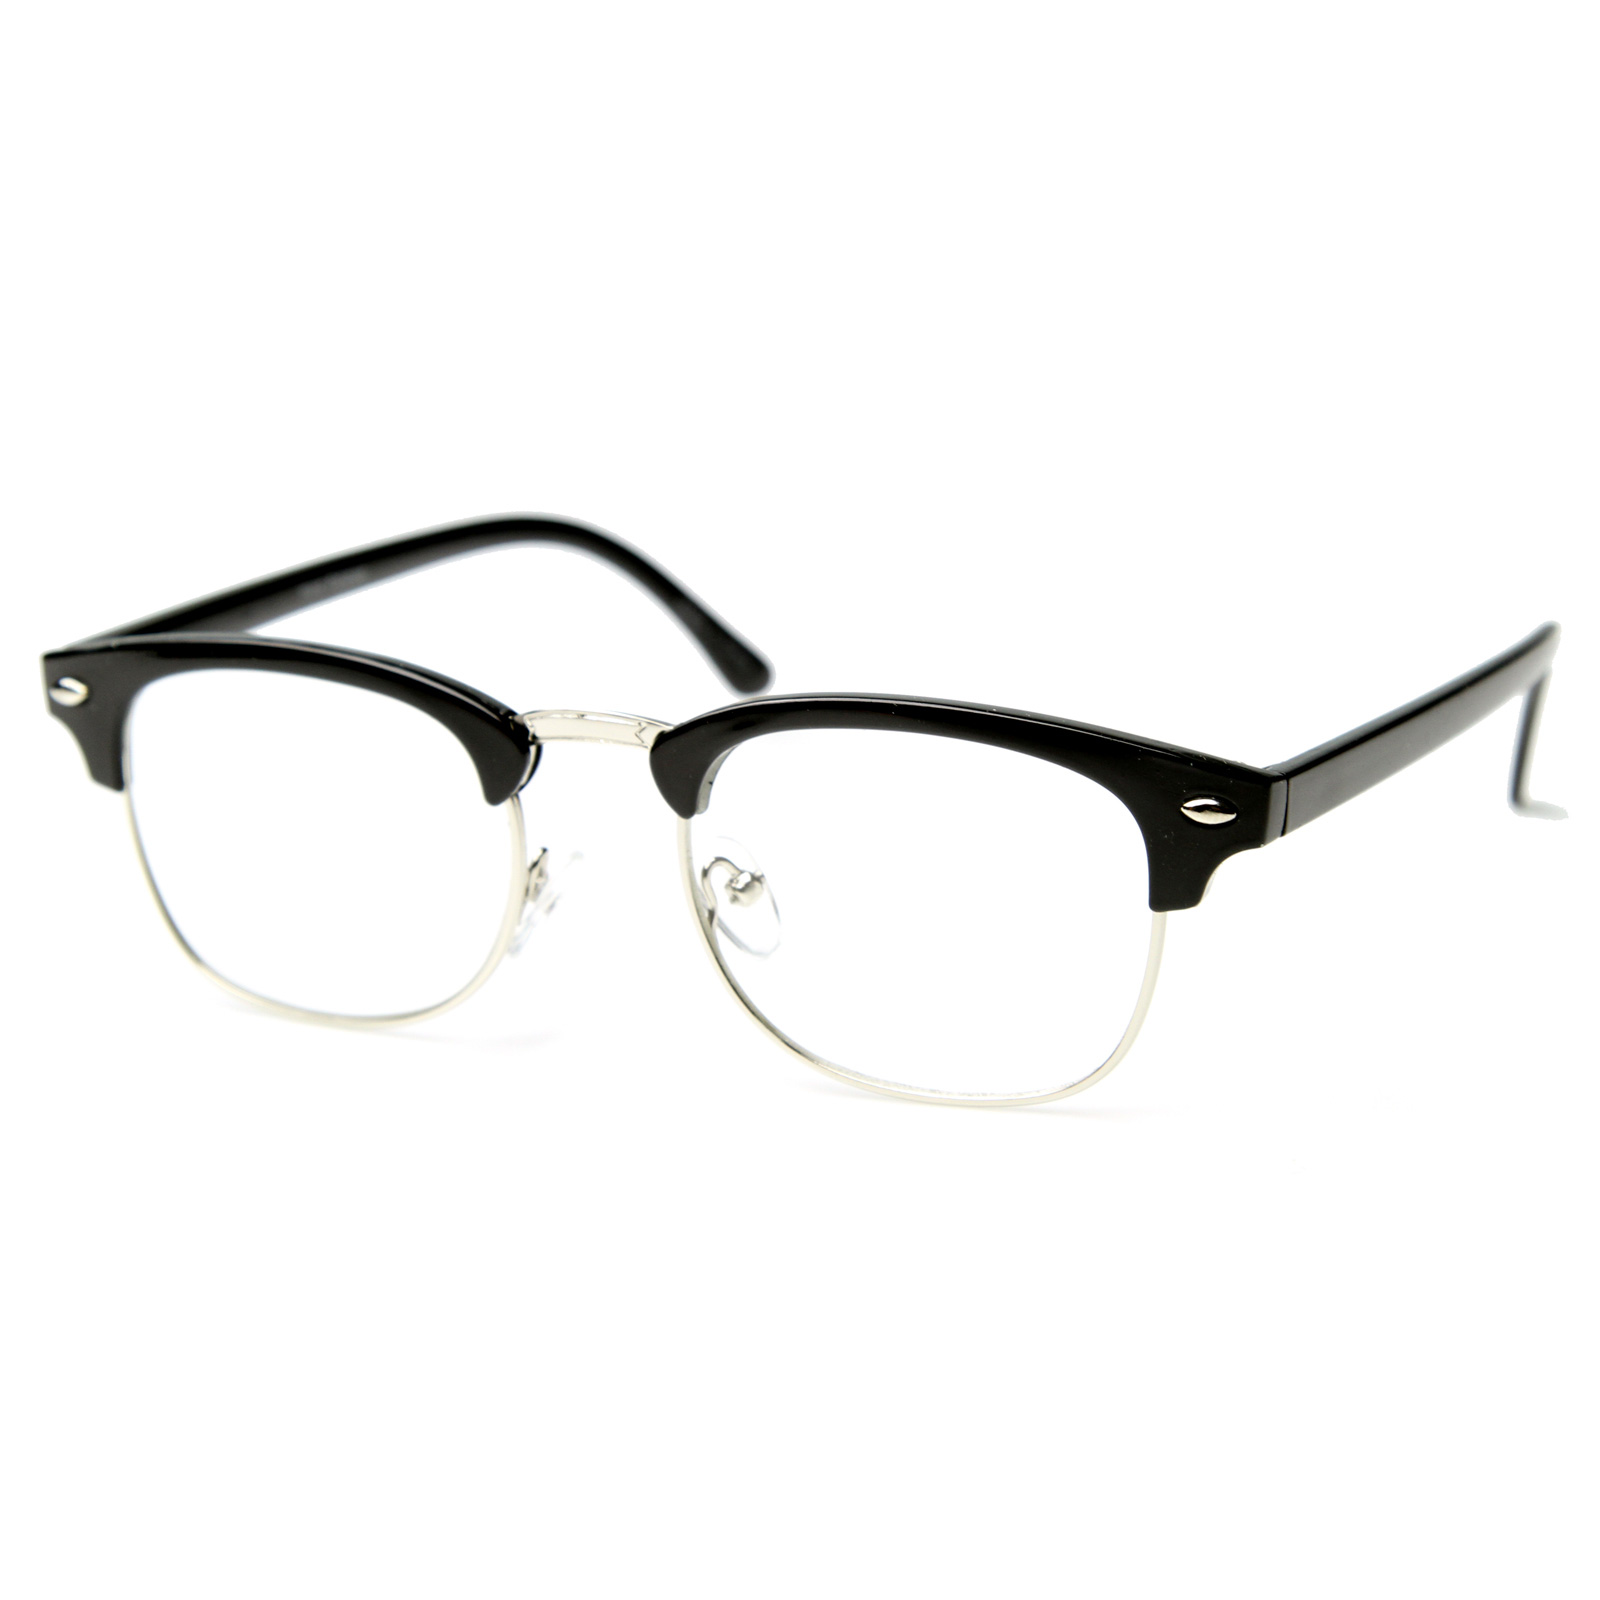 What Are Half Frame Glasses Called : Unworn Original Vintage Half Frame Clubmasters Shades ...